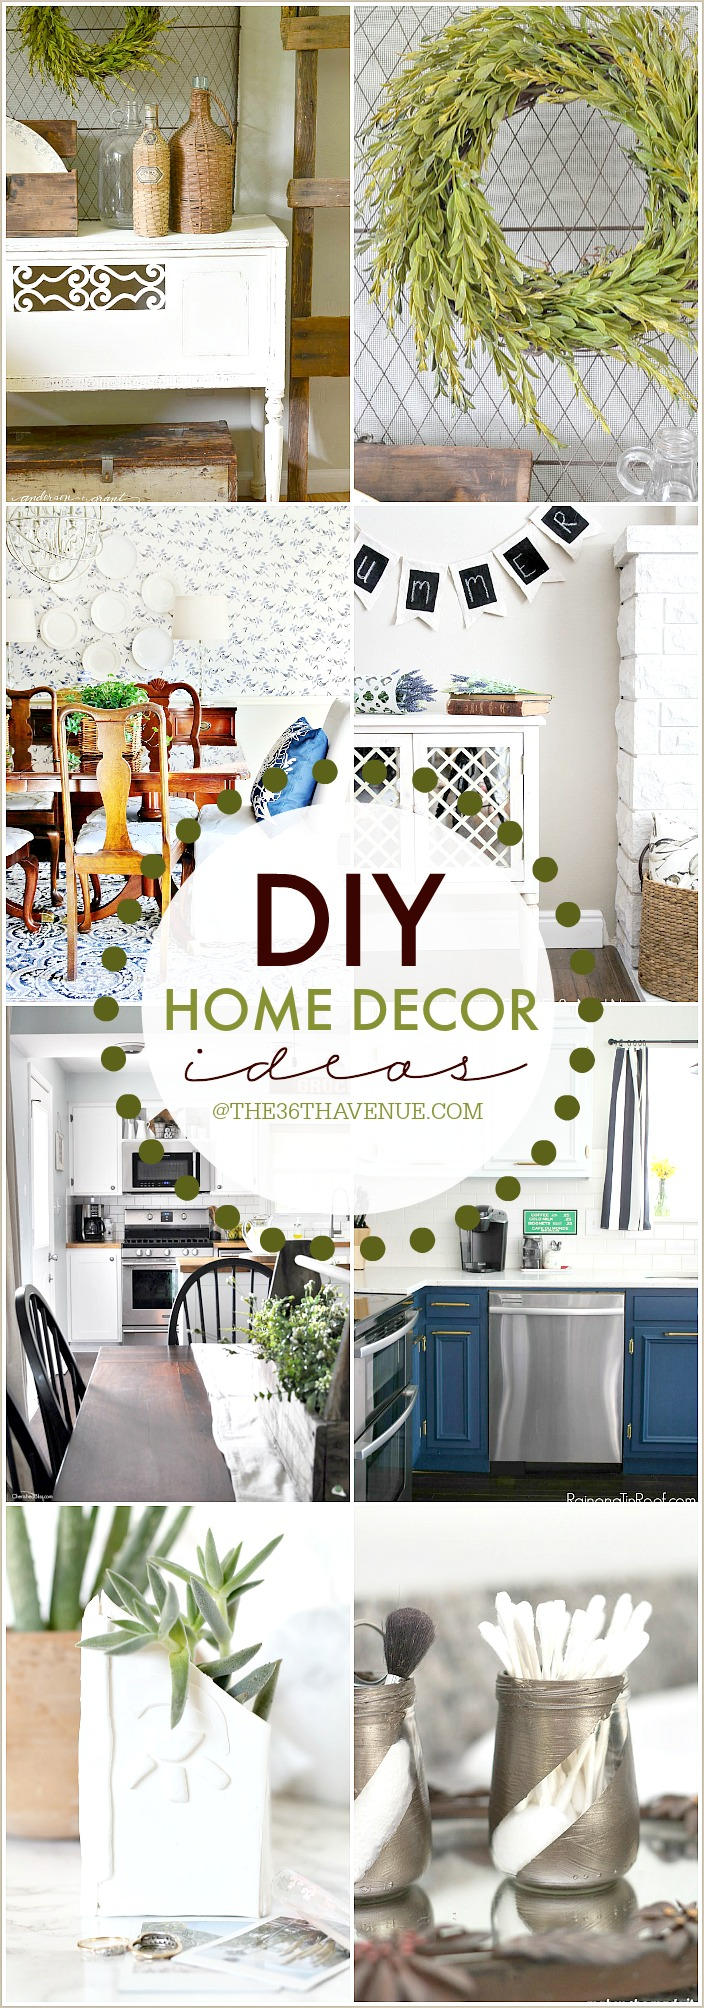 DIY Home Decor Ideas at the36thavenue.com Pin it now and decorate later!